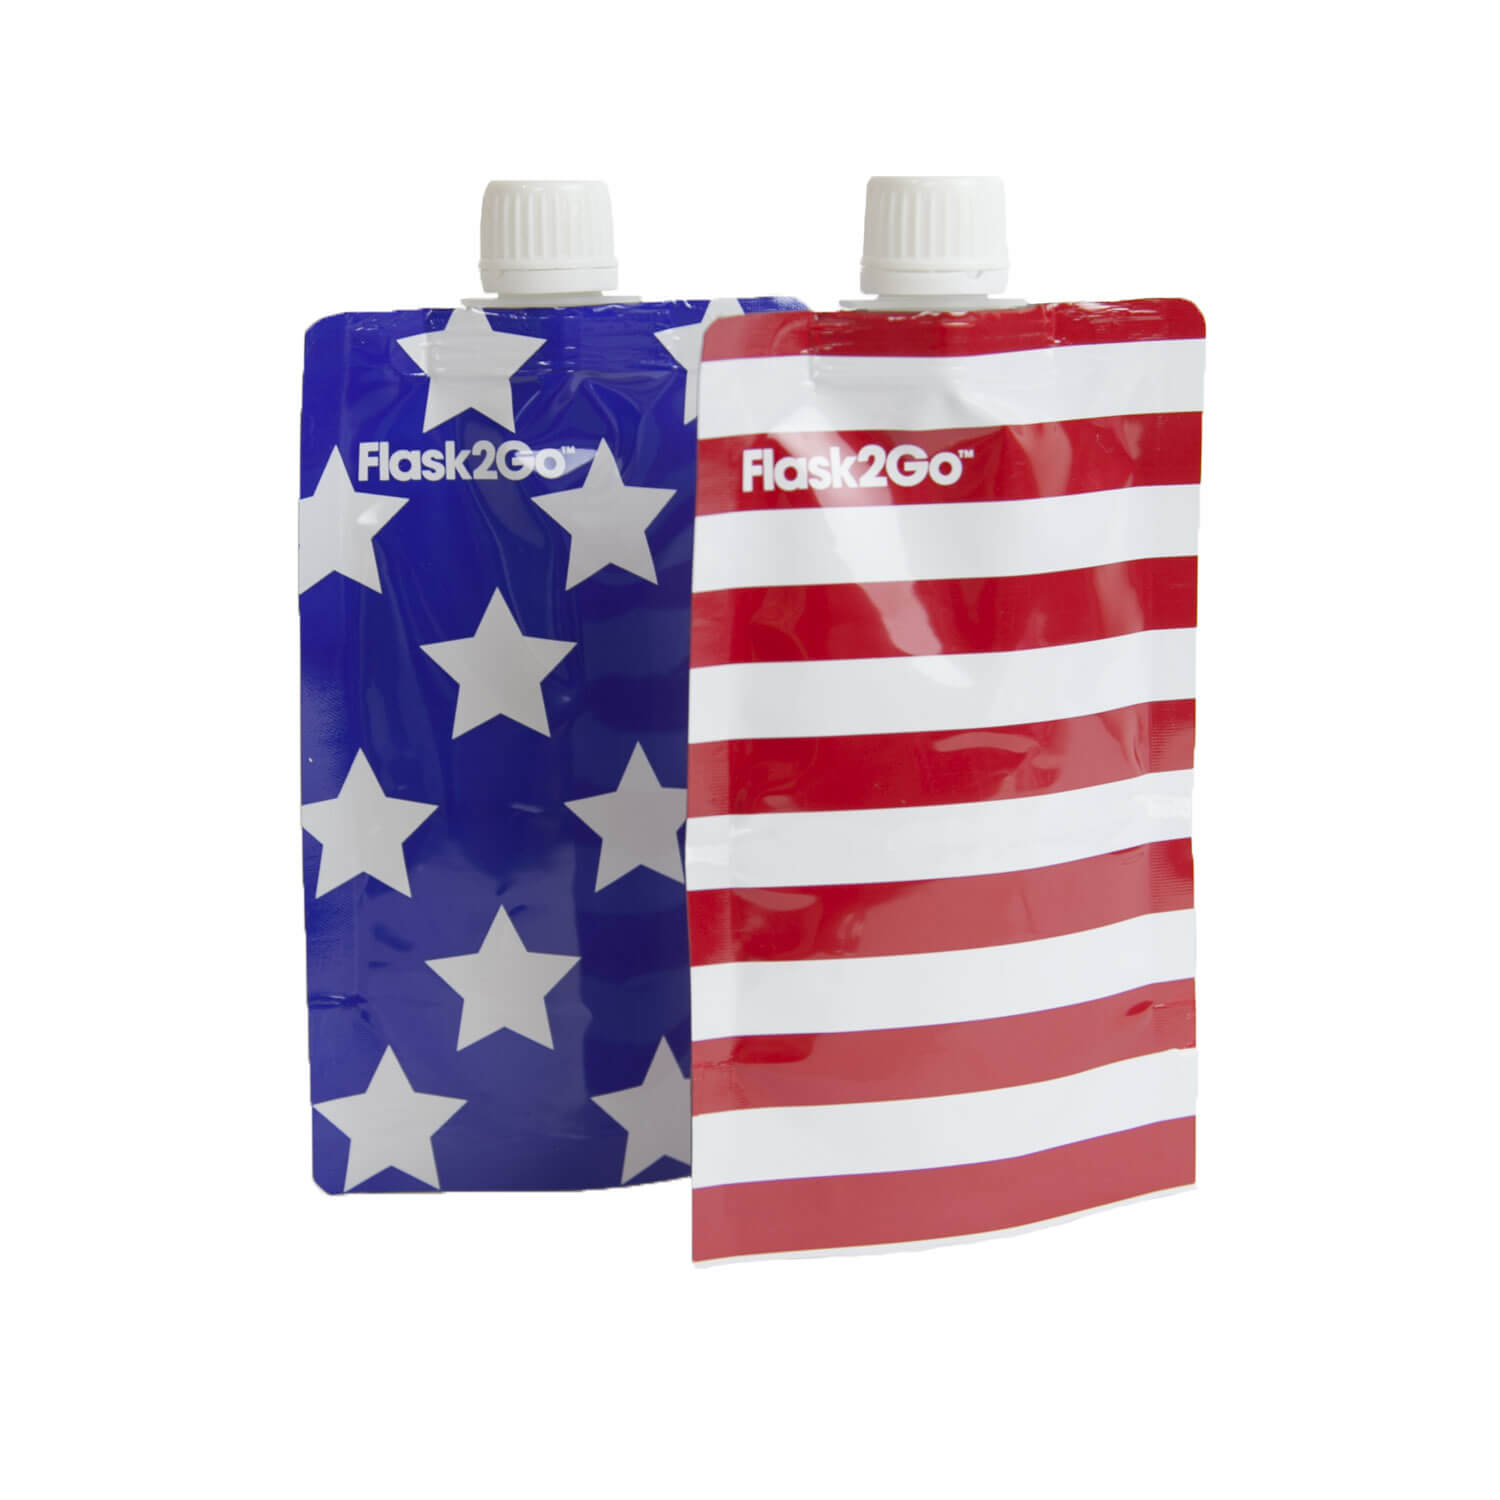 Flask 2 Go - The Disposable Flask (Set of 2) - Stars and Stripes